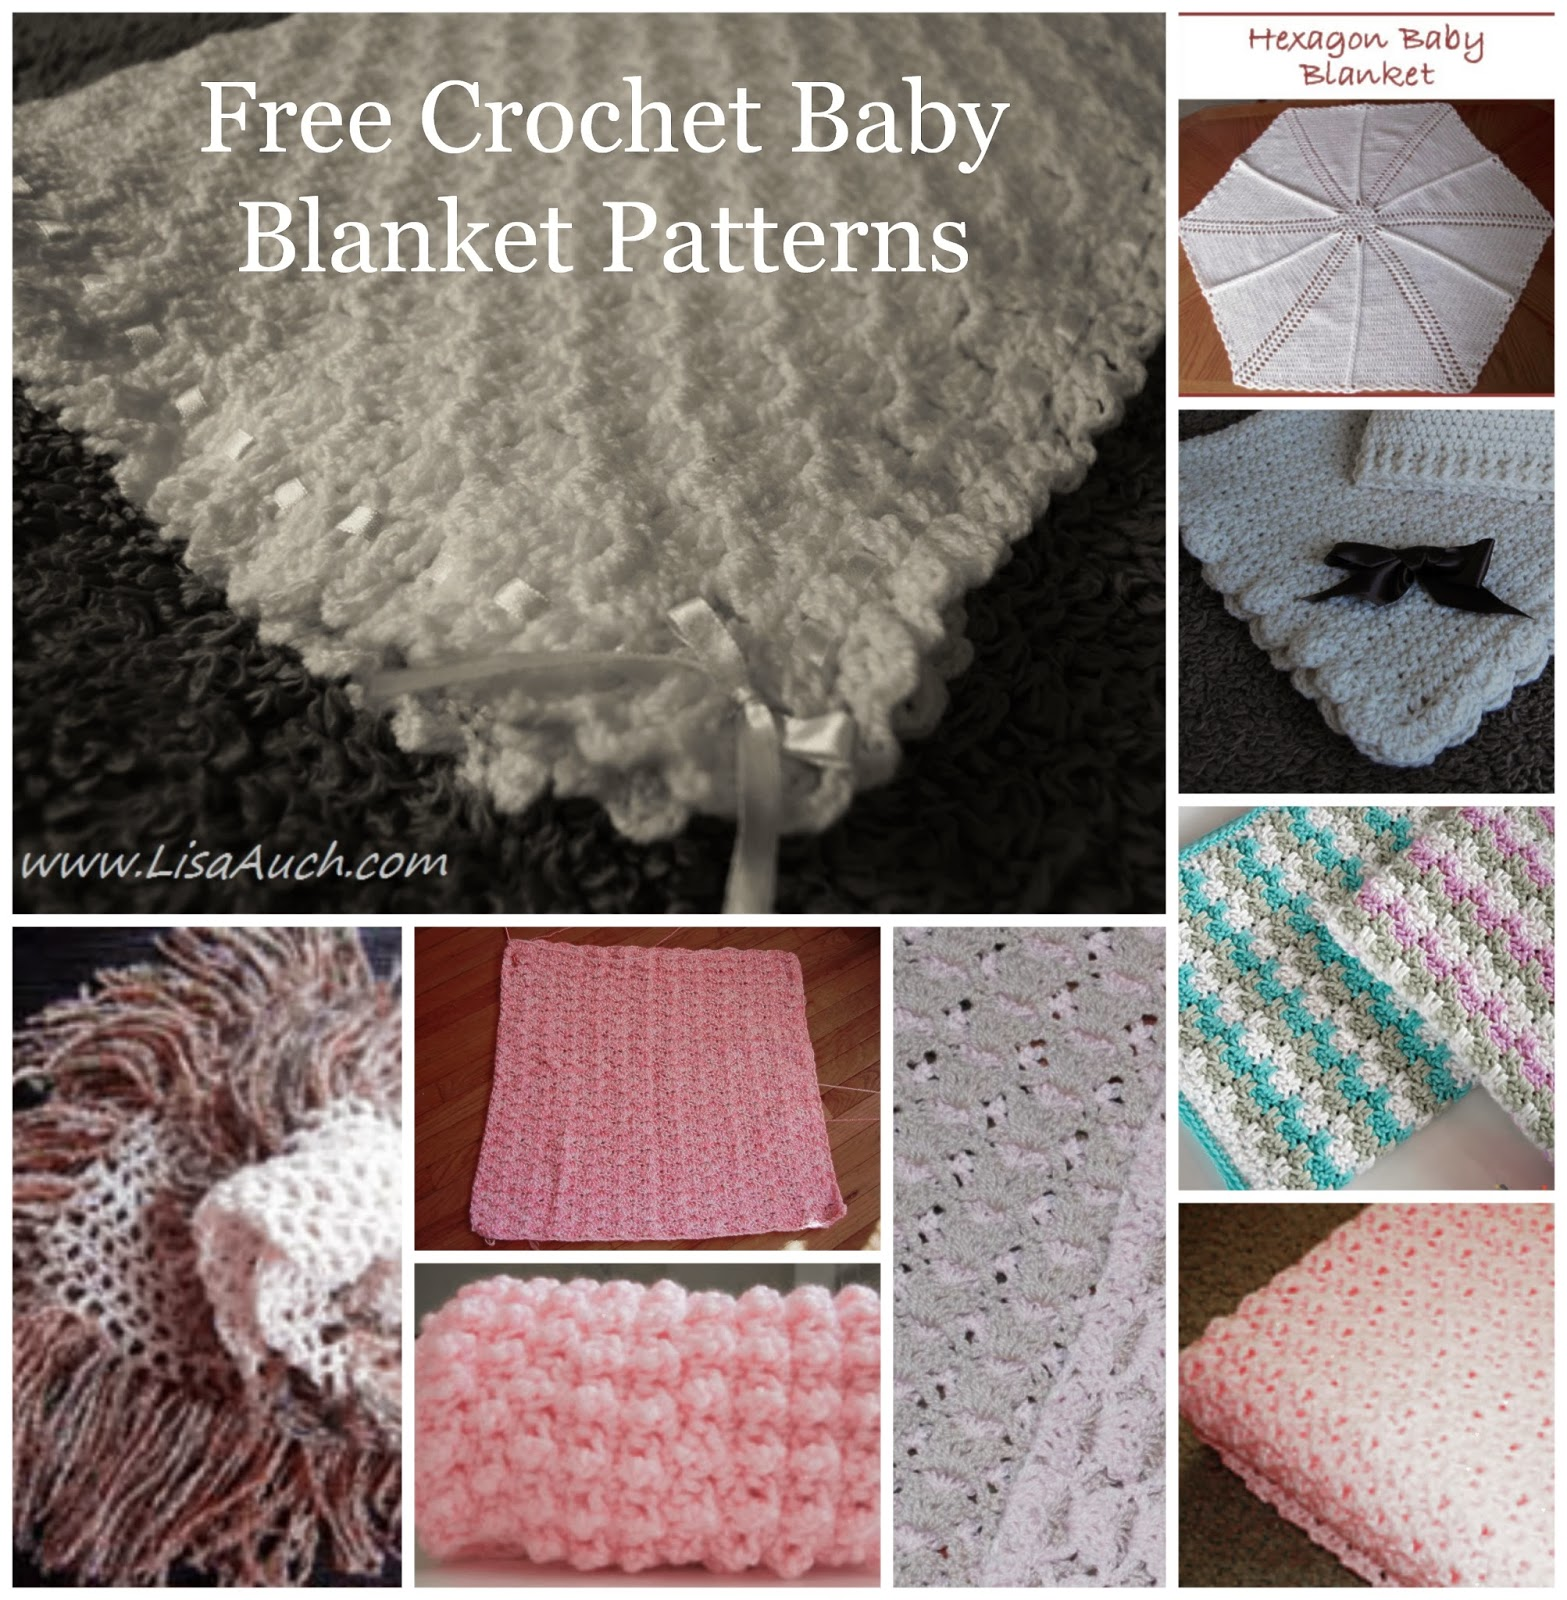 Free Crochet Pattern For A Blanket : 10+ FREE Crochet Patterns for Baby Blankets {Baby Afghan ...